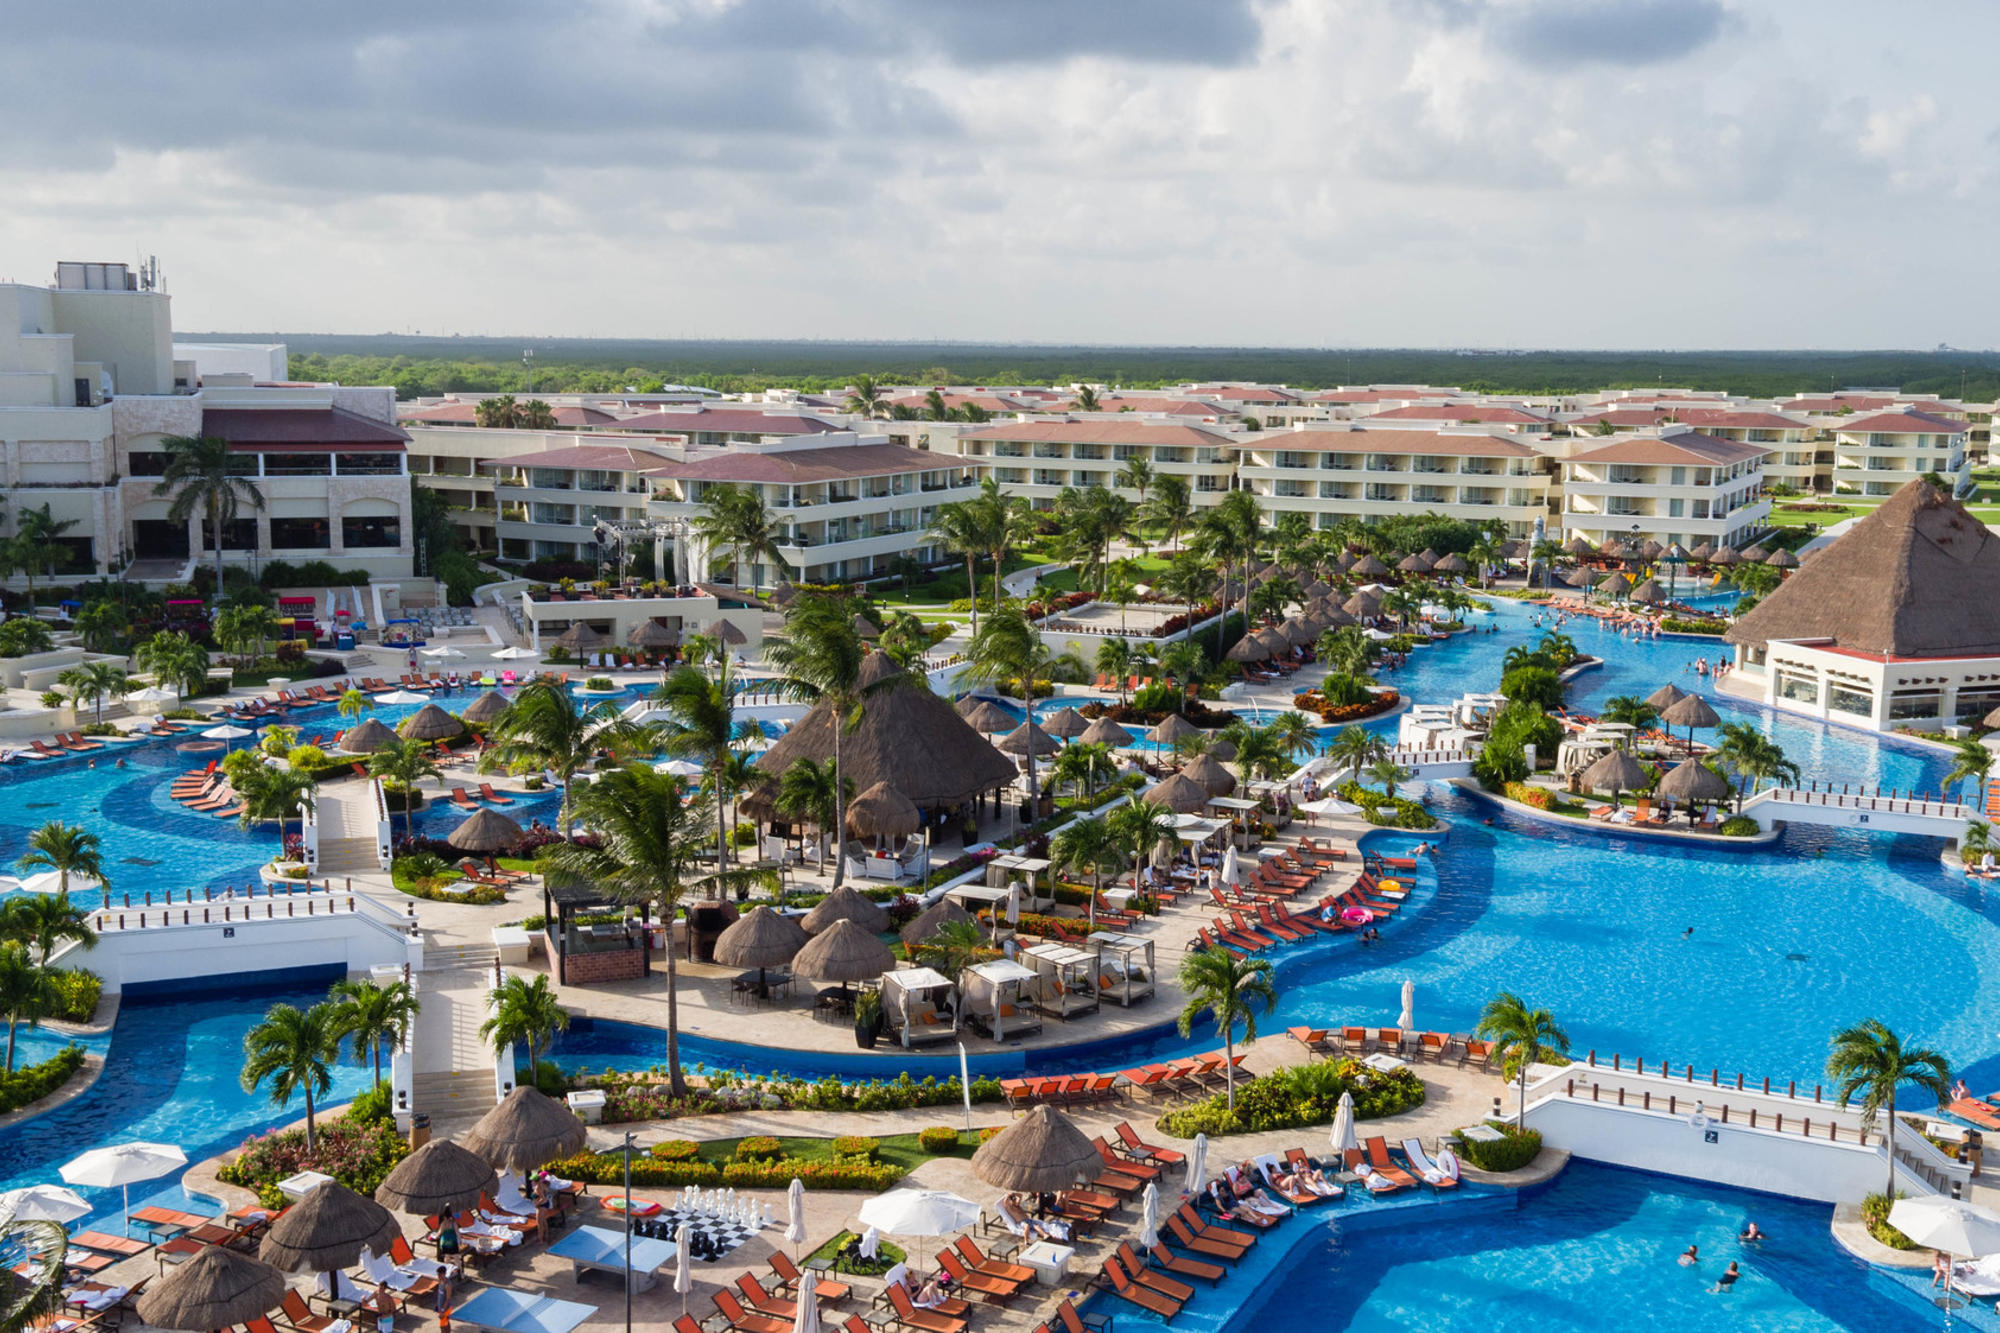 The main pool at the Moon Palace Cancun in the Sunrise section